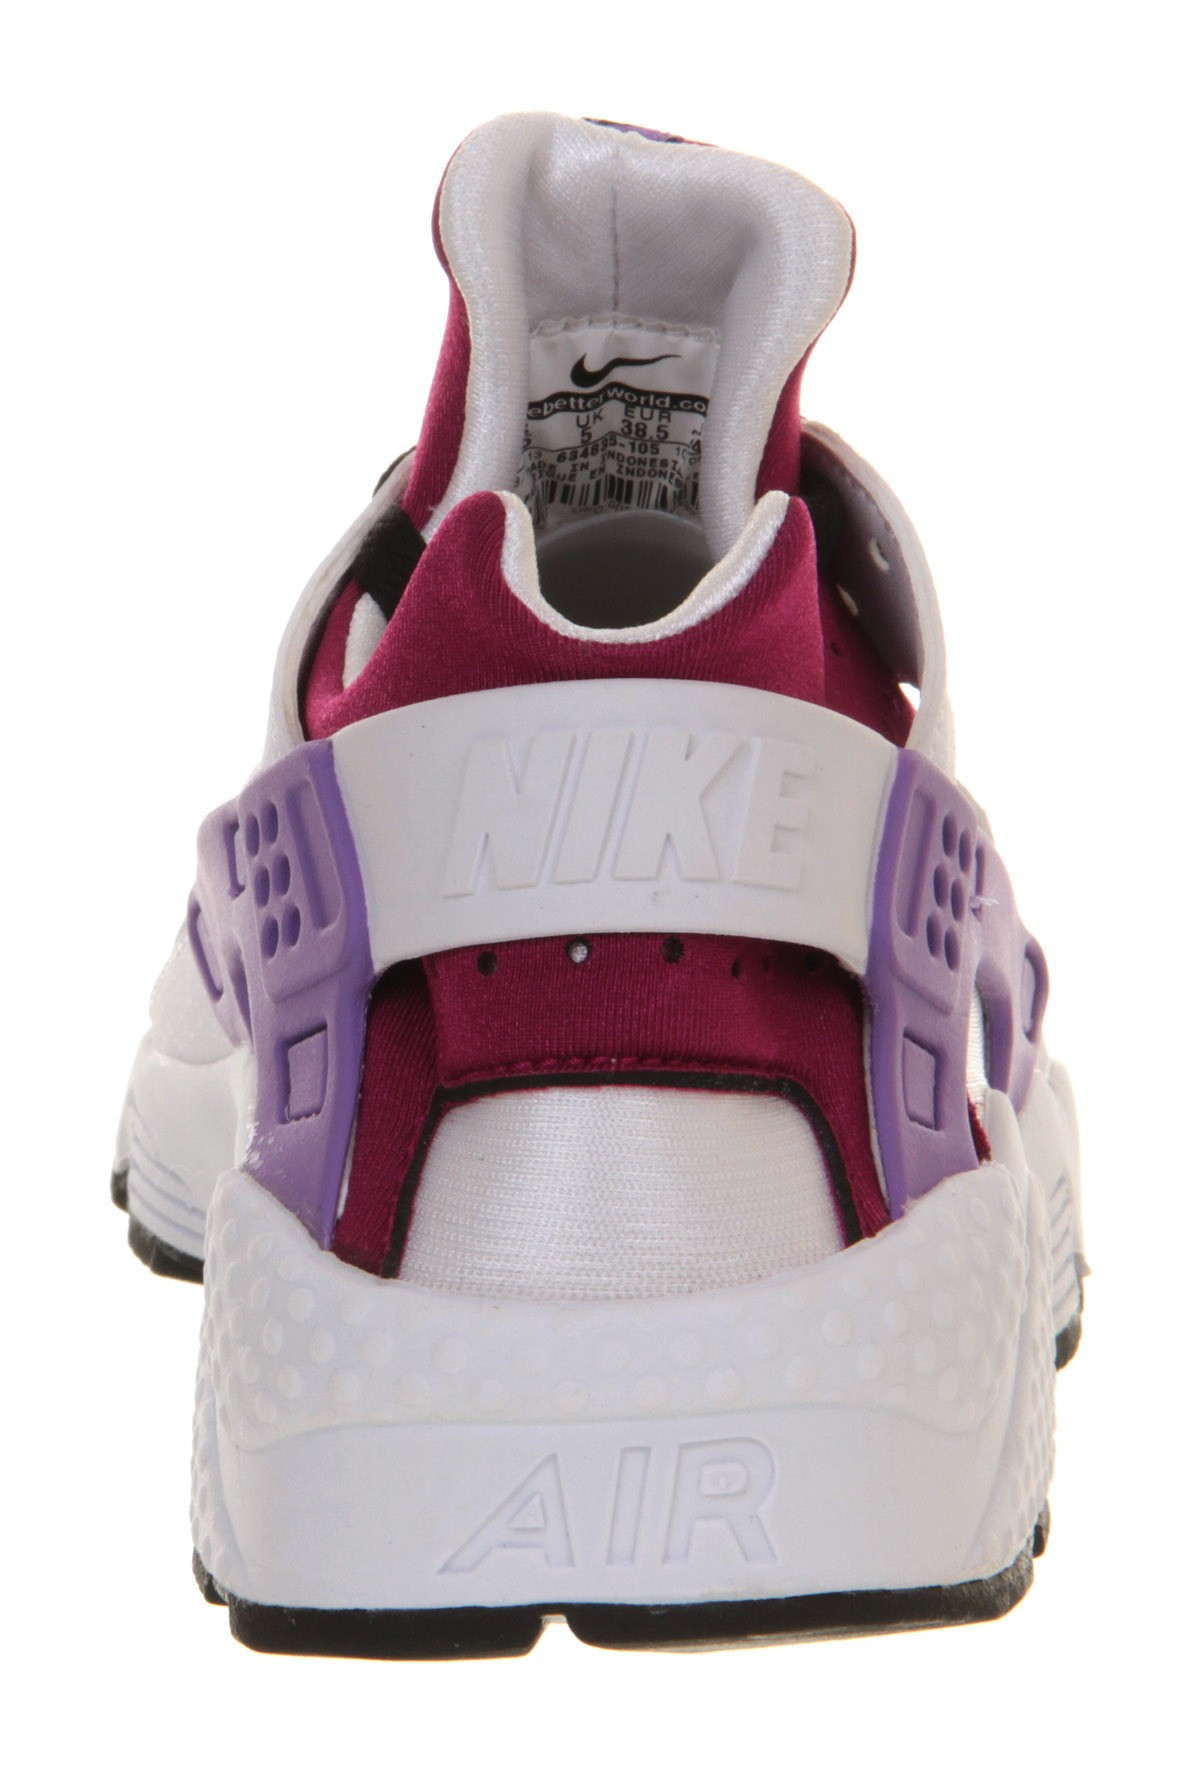 Nike WMNS Air Huarache 634835 105 White/Black-Bright Magenta Womens Trainers